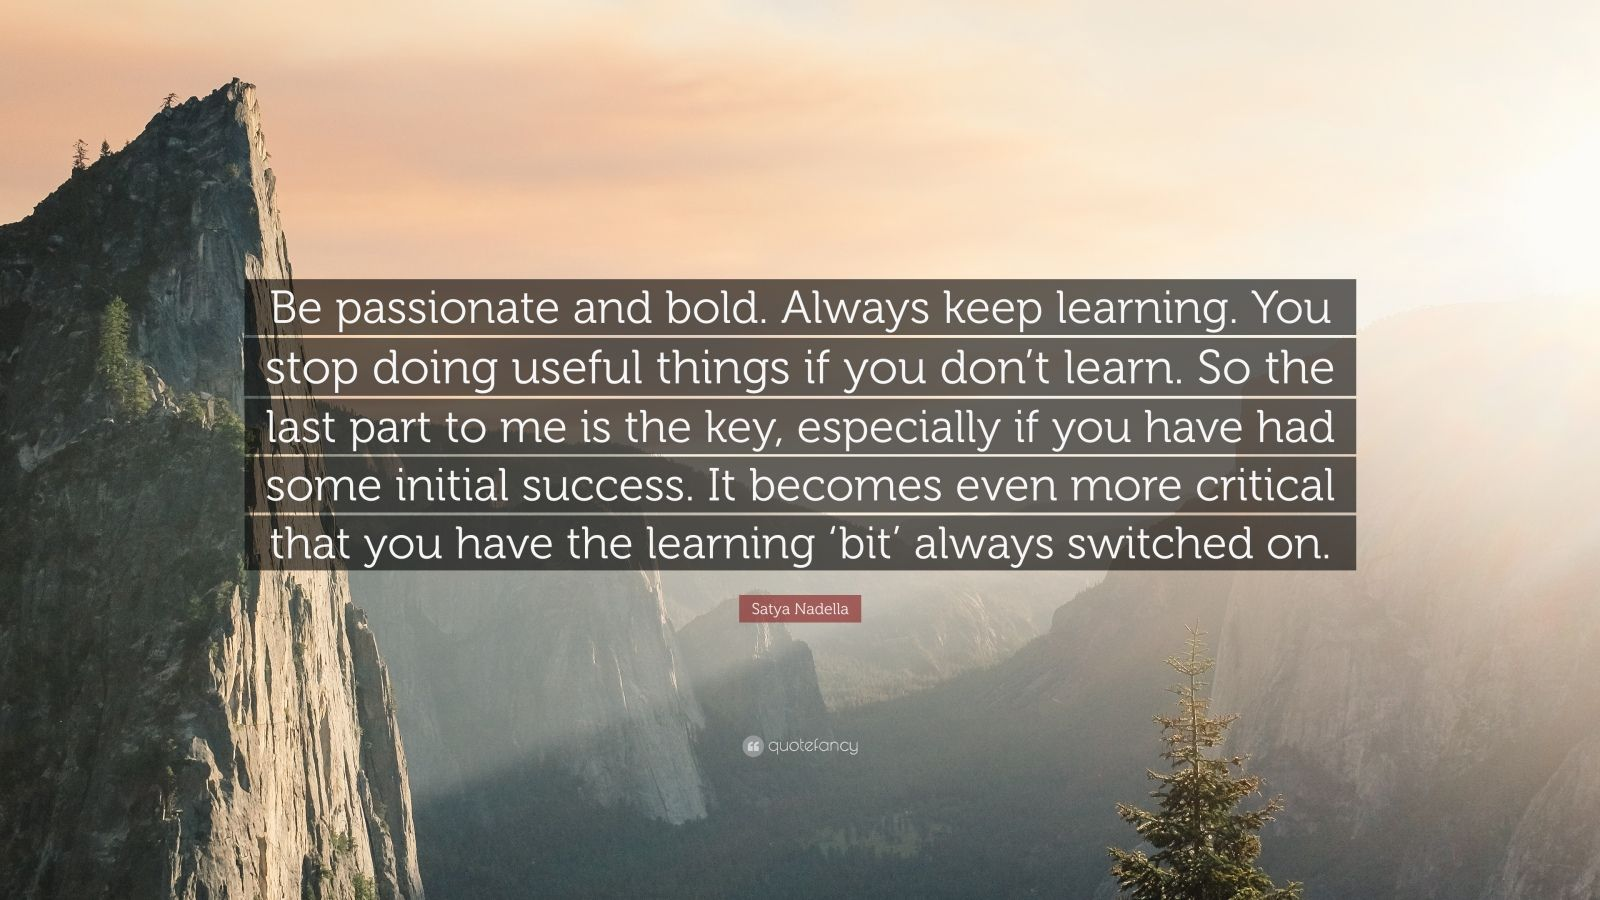 "Satya Nadella Quote: ""Be passionate and bold. Always keep learning. You stop doing useful things if you don't learn. So the last part to me is the key, especially if you have had some initial success. It becomes even more critical that you have the learning 'bit' always switched on."""